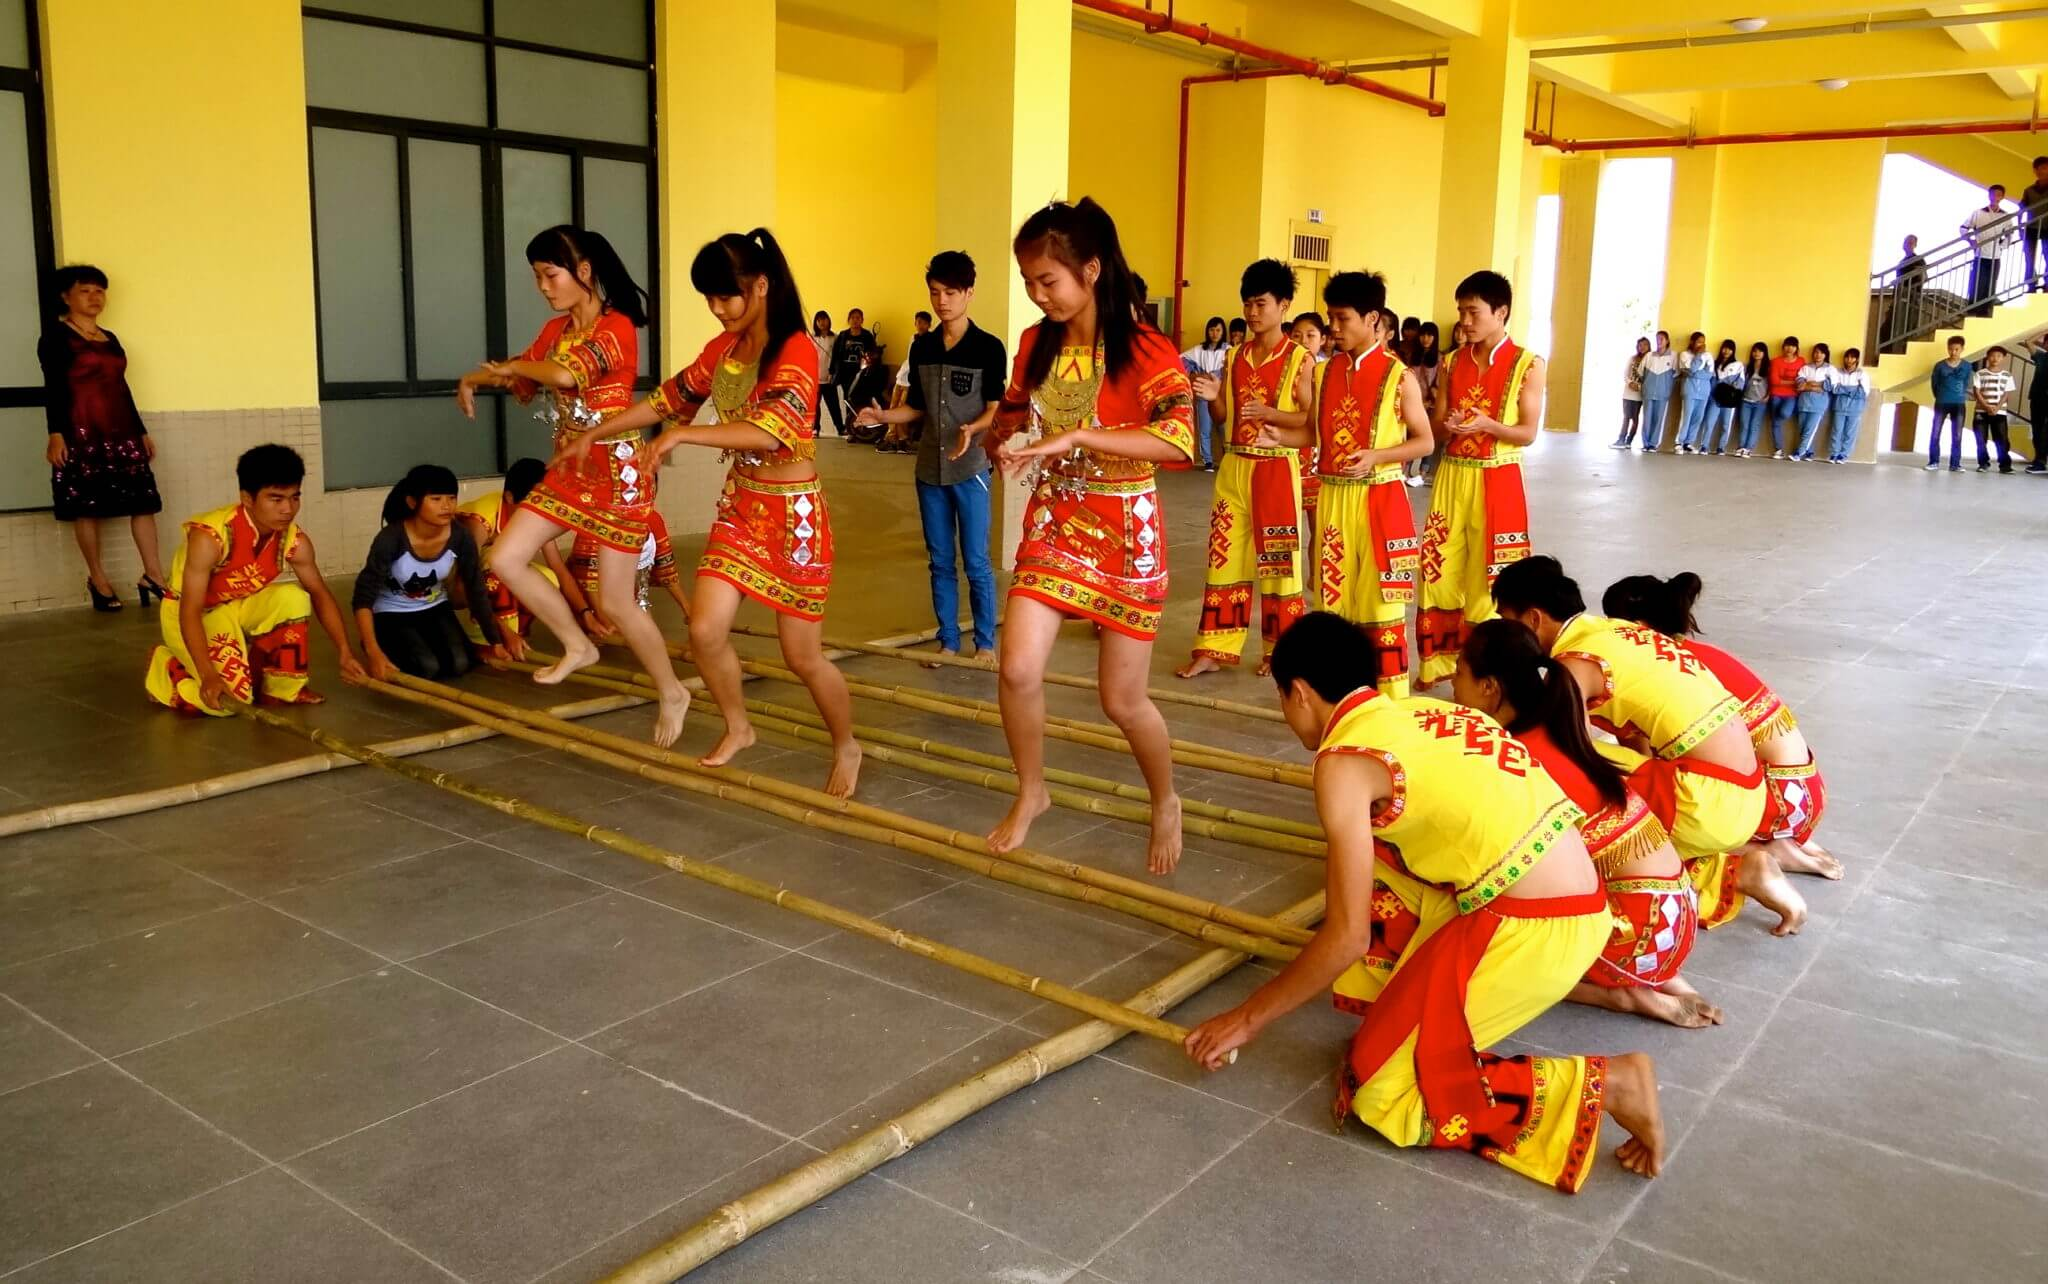 Bamboo Dance being performed - Bamboooz